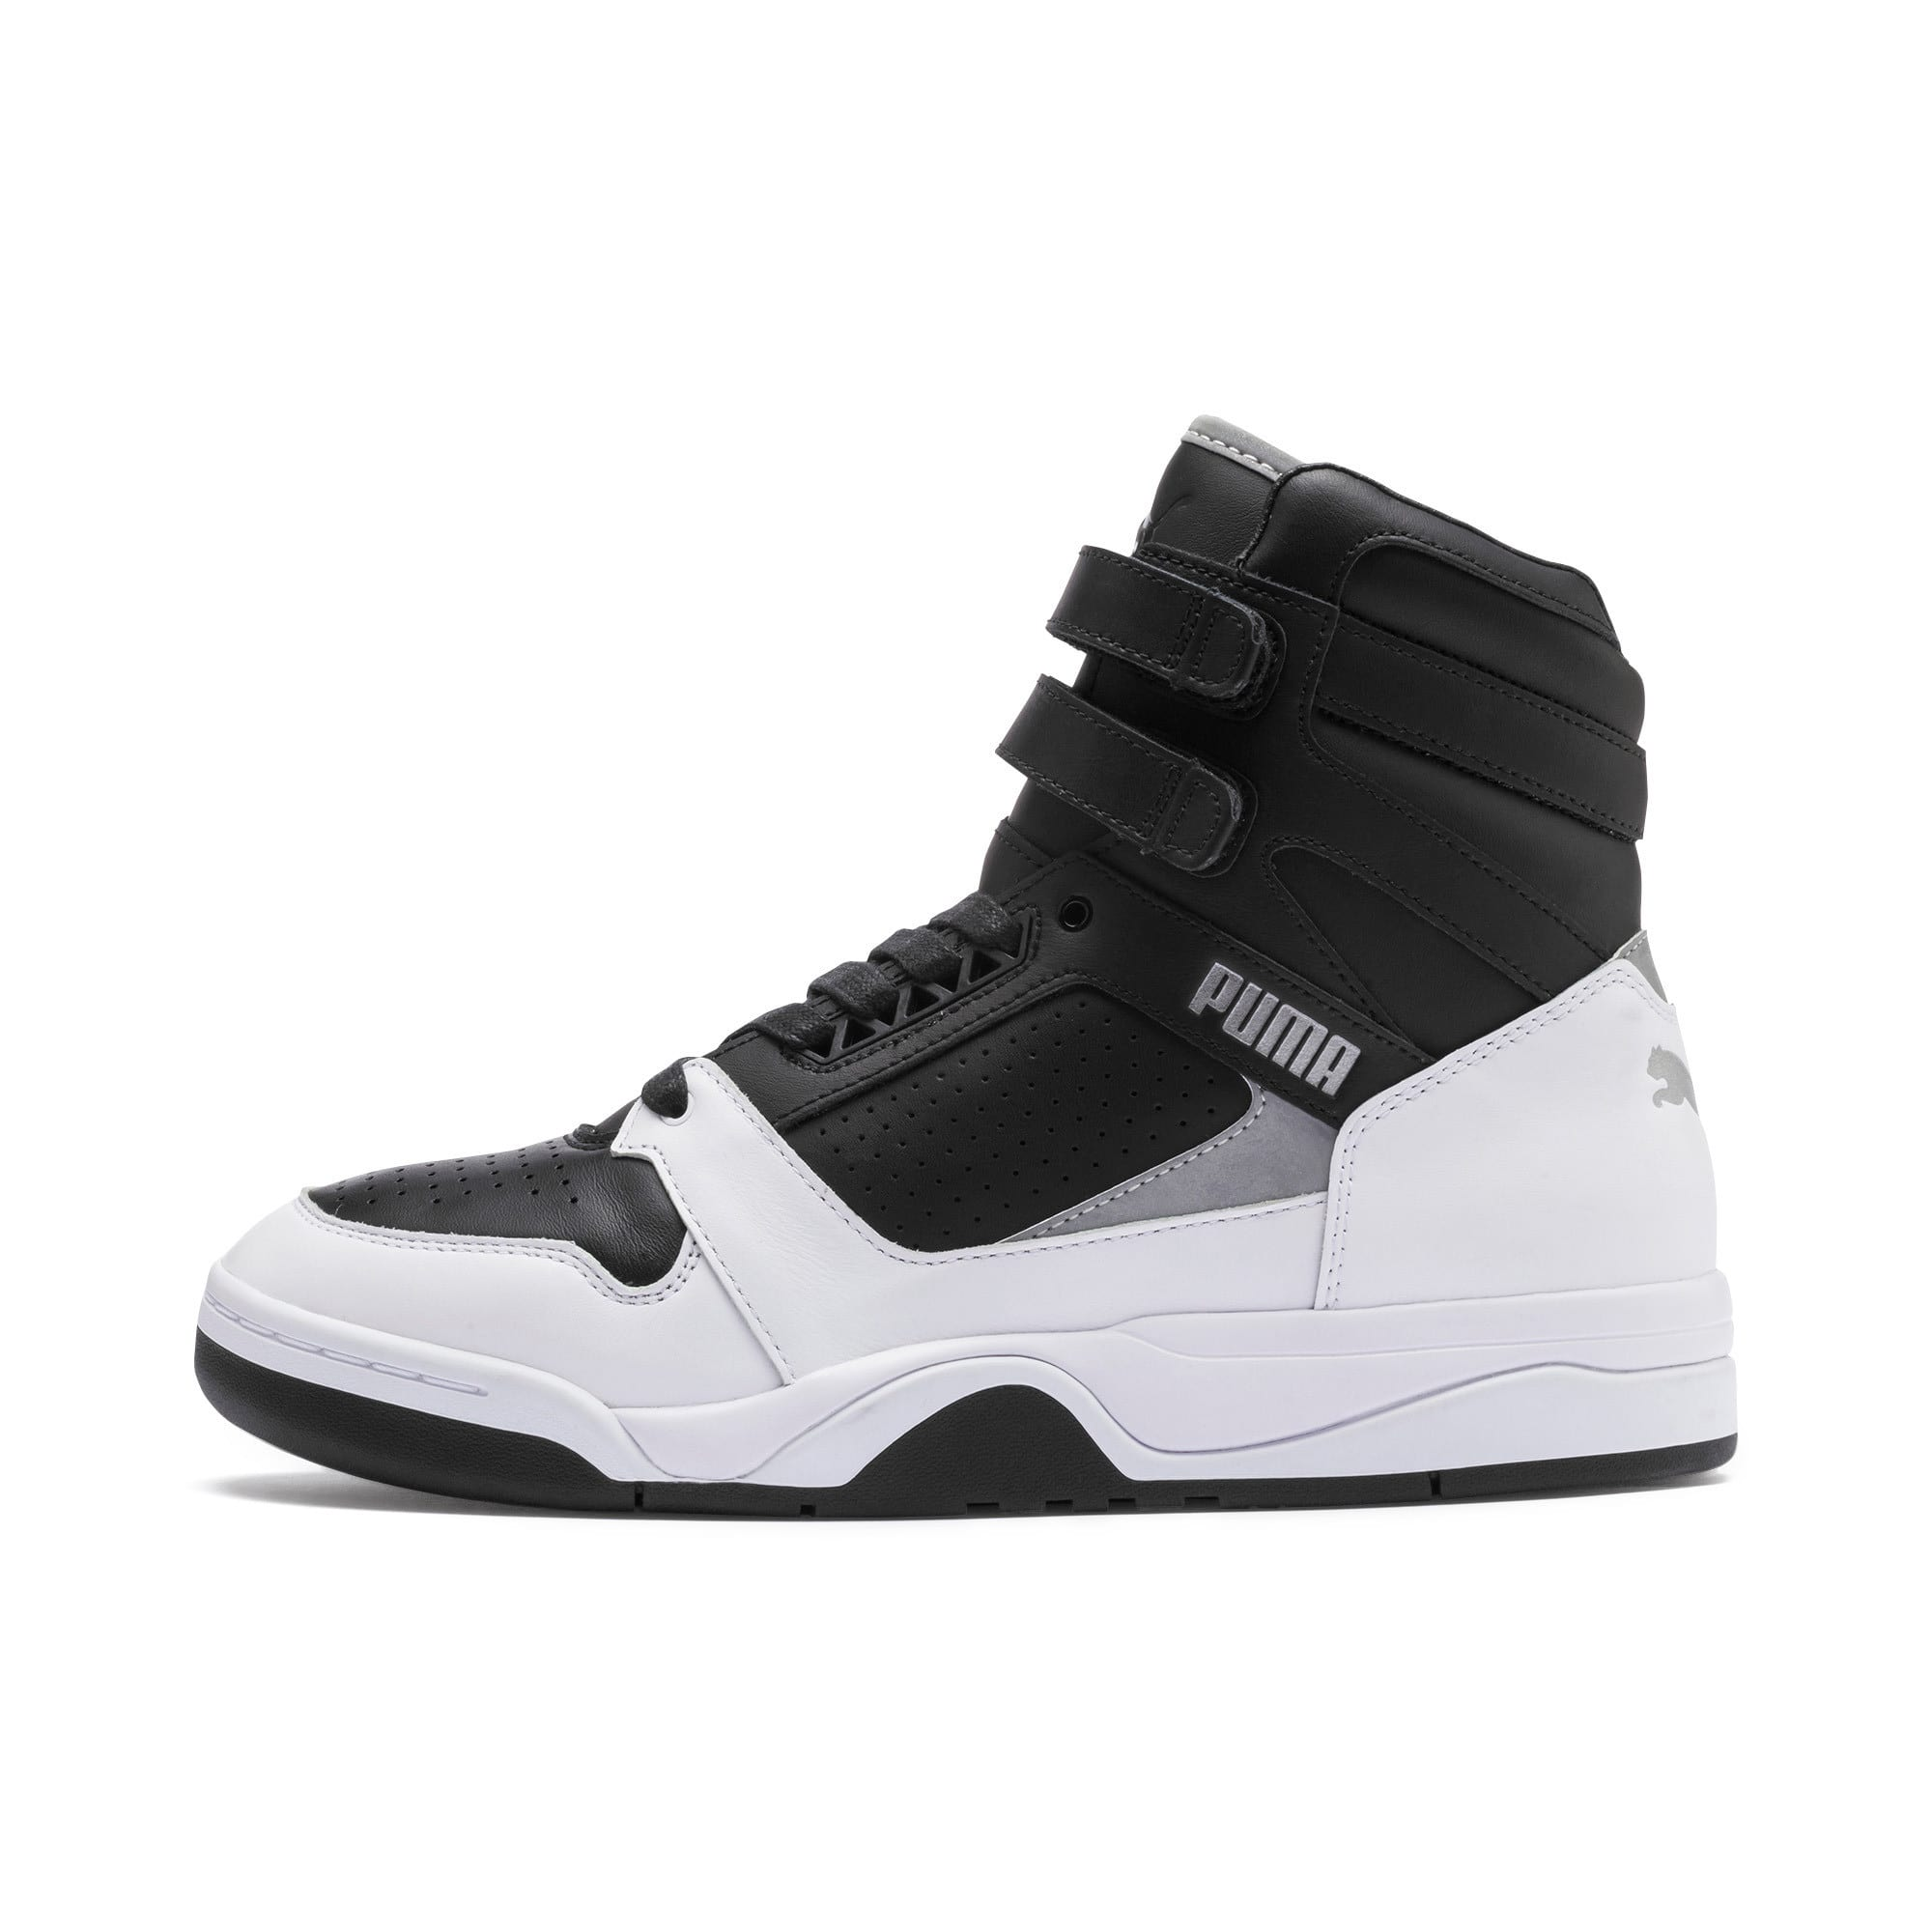 Thumbnail 1 of Palace Guard Mid Moto-X Sneakers, Puma Black-Puma Silver-, medium